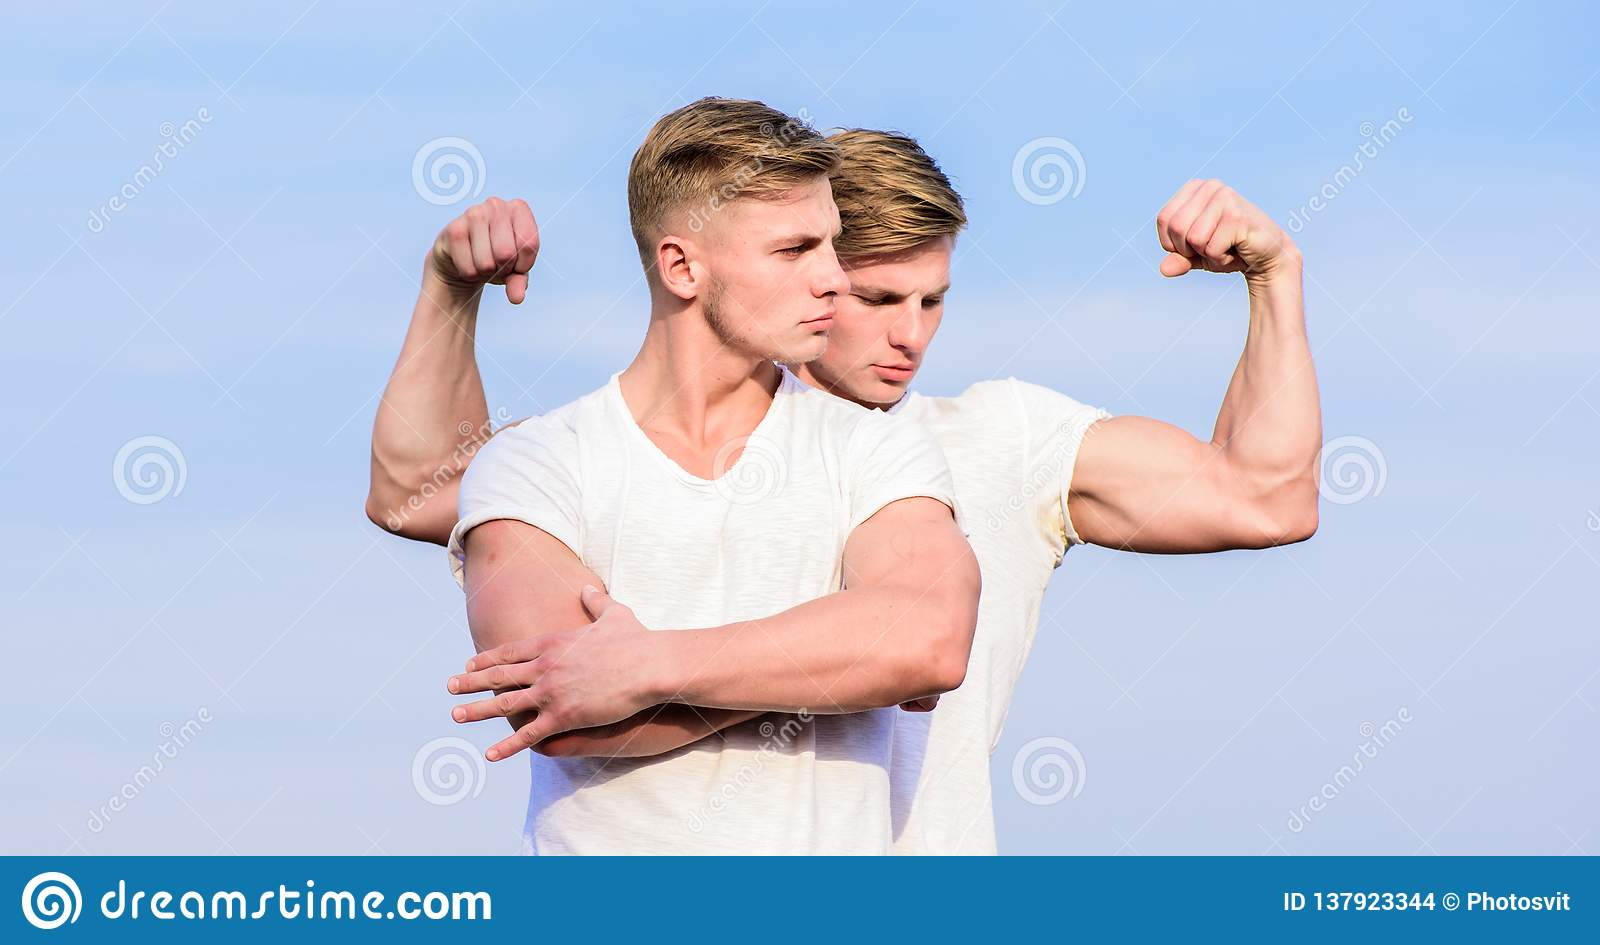 Men strong muscular athlete bodybuilder posing confidently in white shirts. Sport lifestyle and healthy body. Attractive